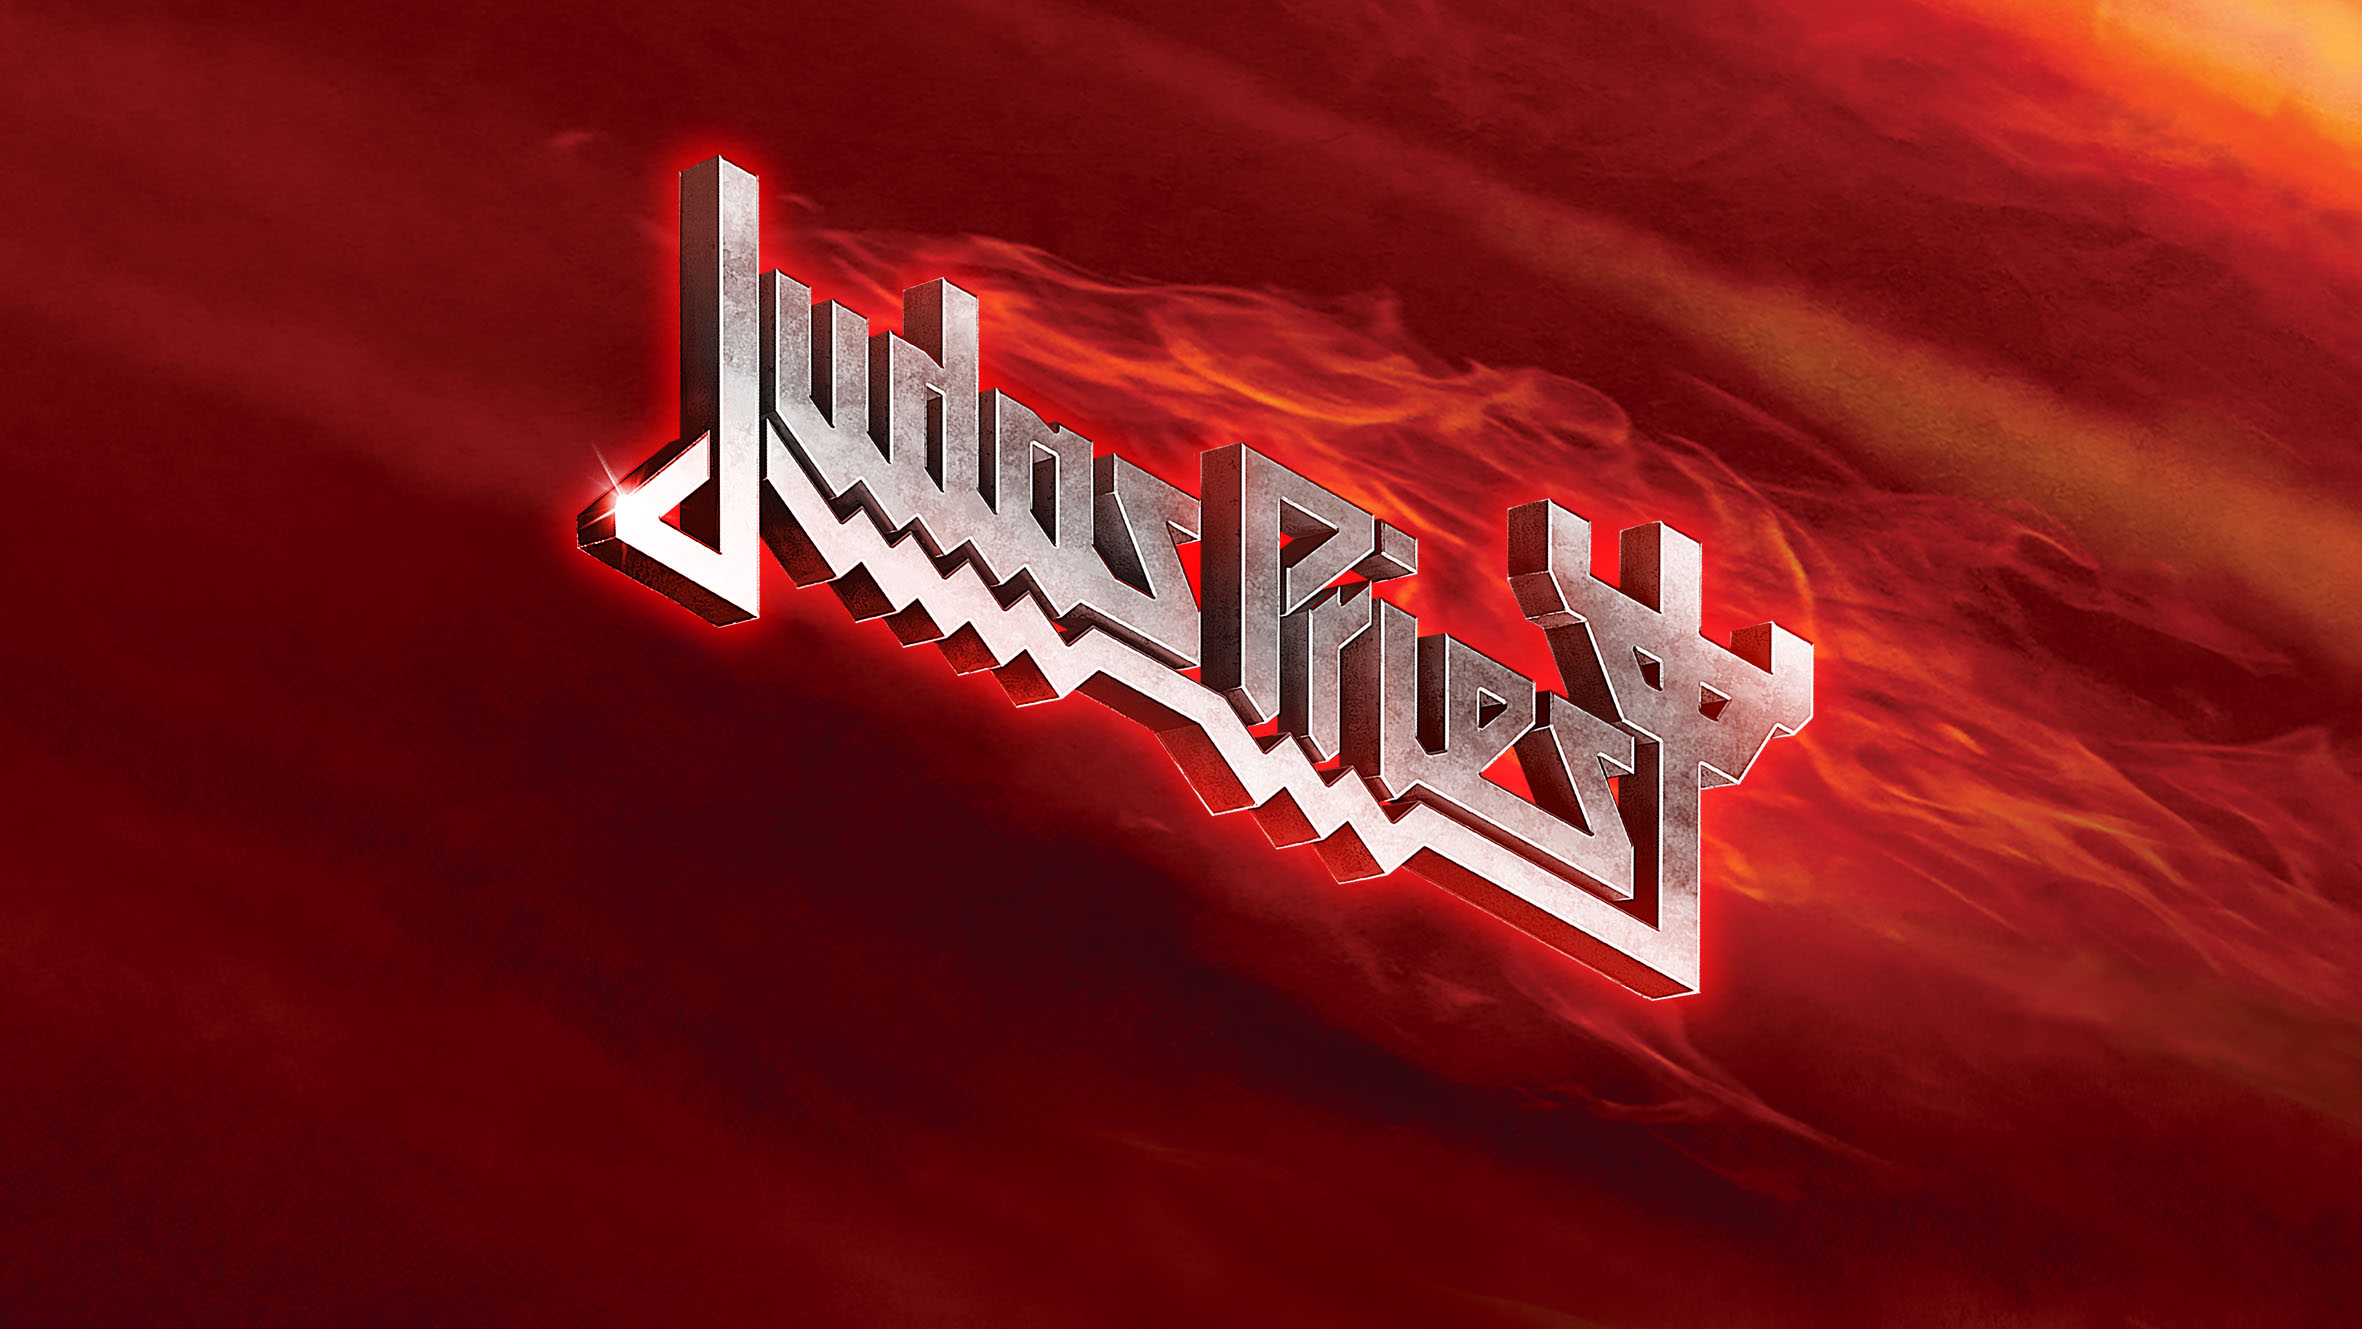 judaspriest com the official judas priest website